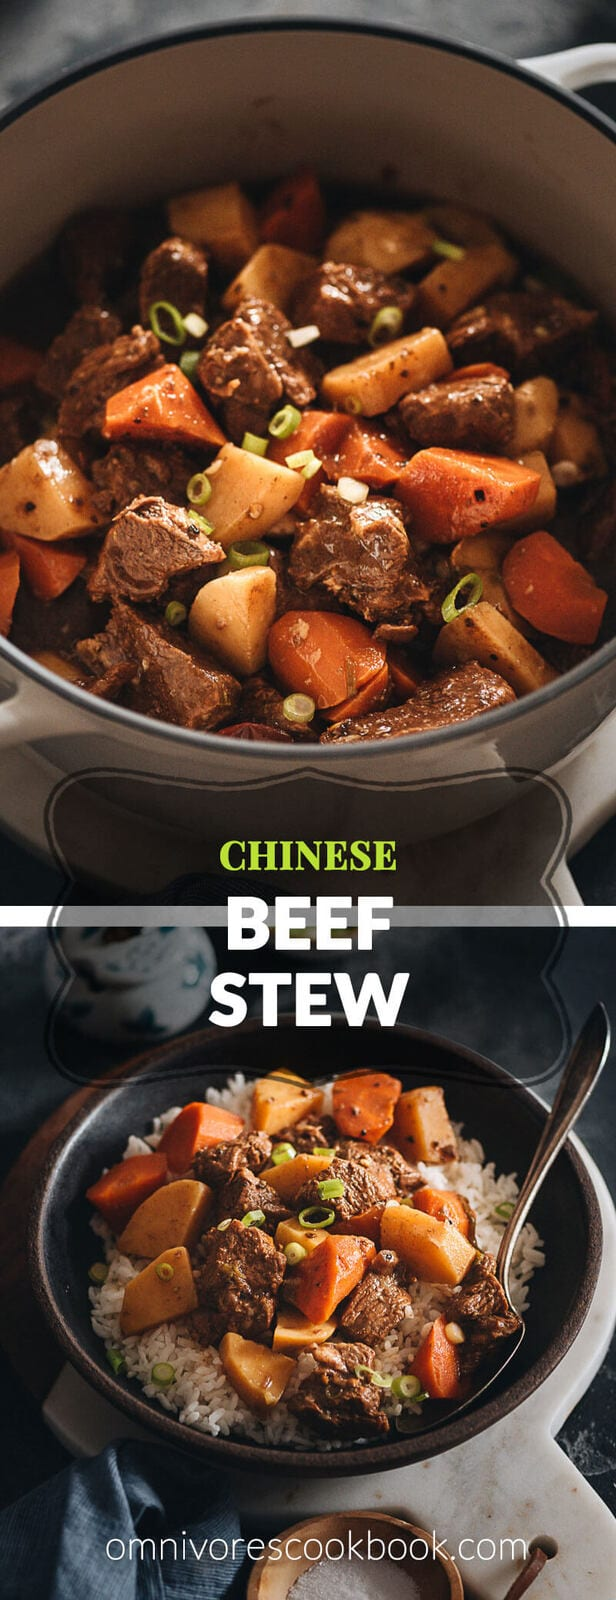 Chinese beef stew with potatoes - The beef is braised in a rich savory broth with potatoes and carrots until super tender and flavorful. An easy make-ahead recipe that requires little prep and you'll have delicious dinners for the next couple of days. Freezer and meal-prep friendly. {Gluten-Free adaptable}